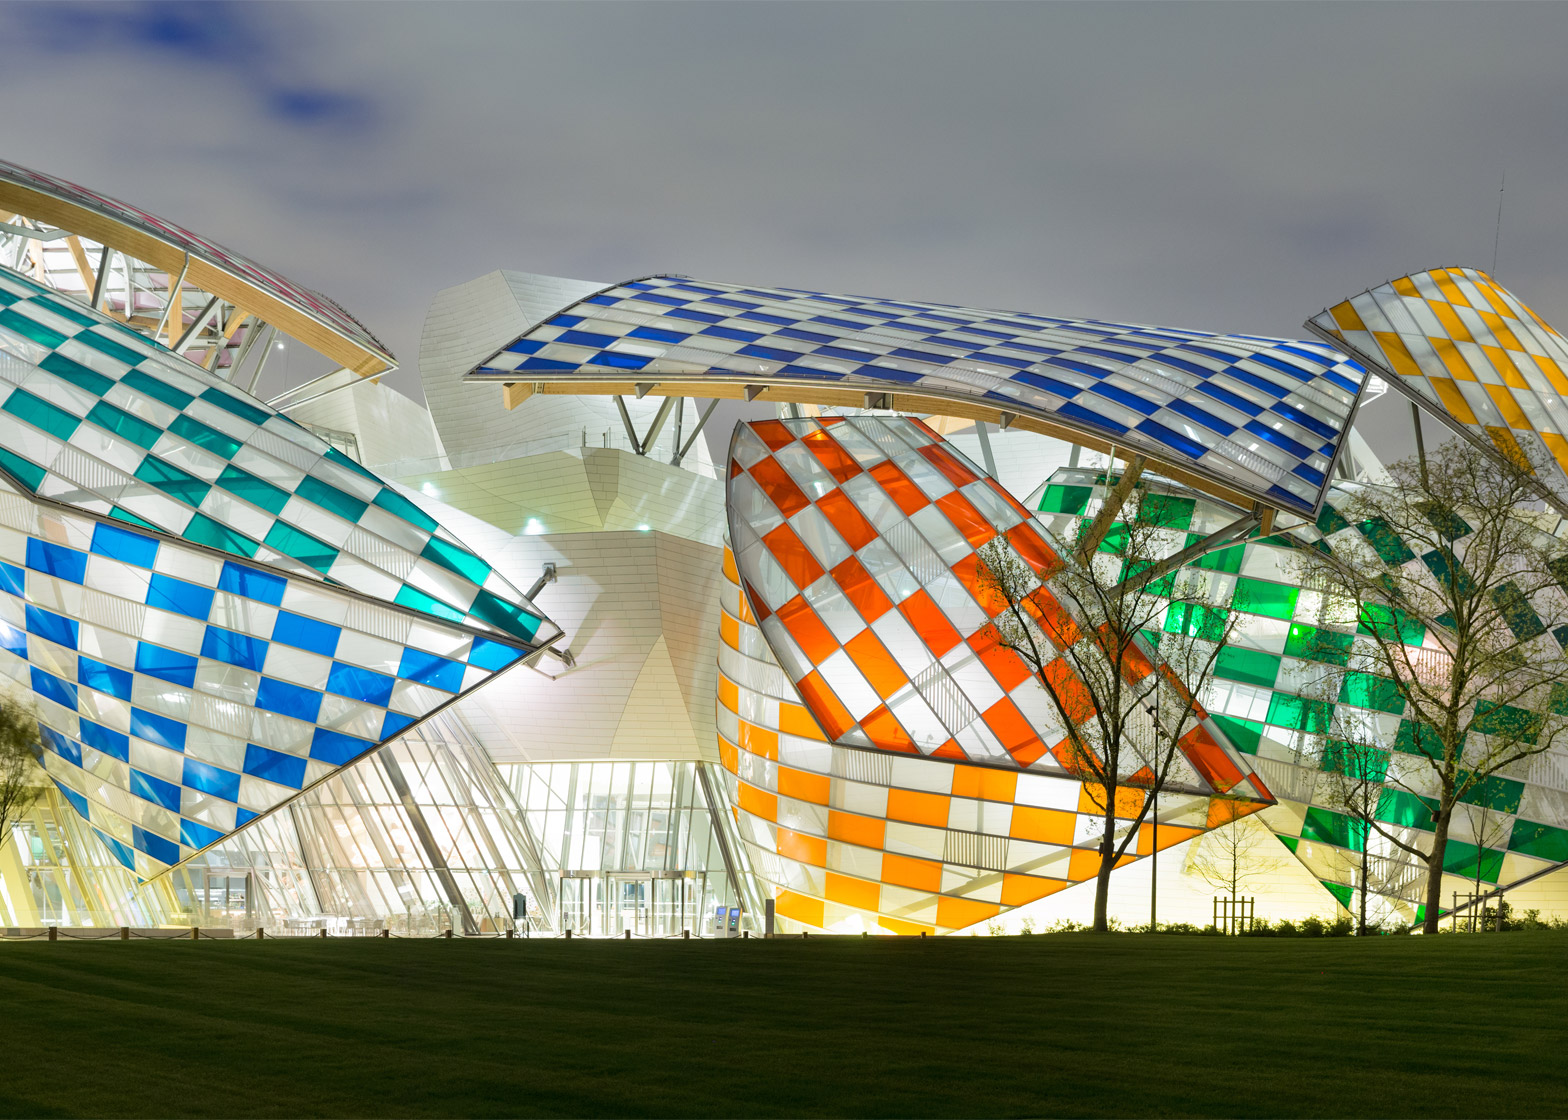 Observatory of Light multicoloured glass installation by Daniel Buren at the Fondation Louis Vuitton by Frank Gehry in Paris, France